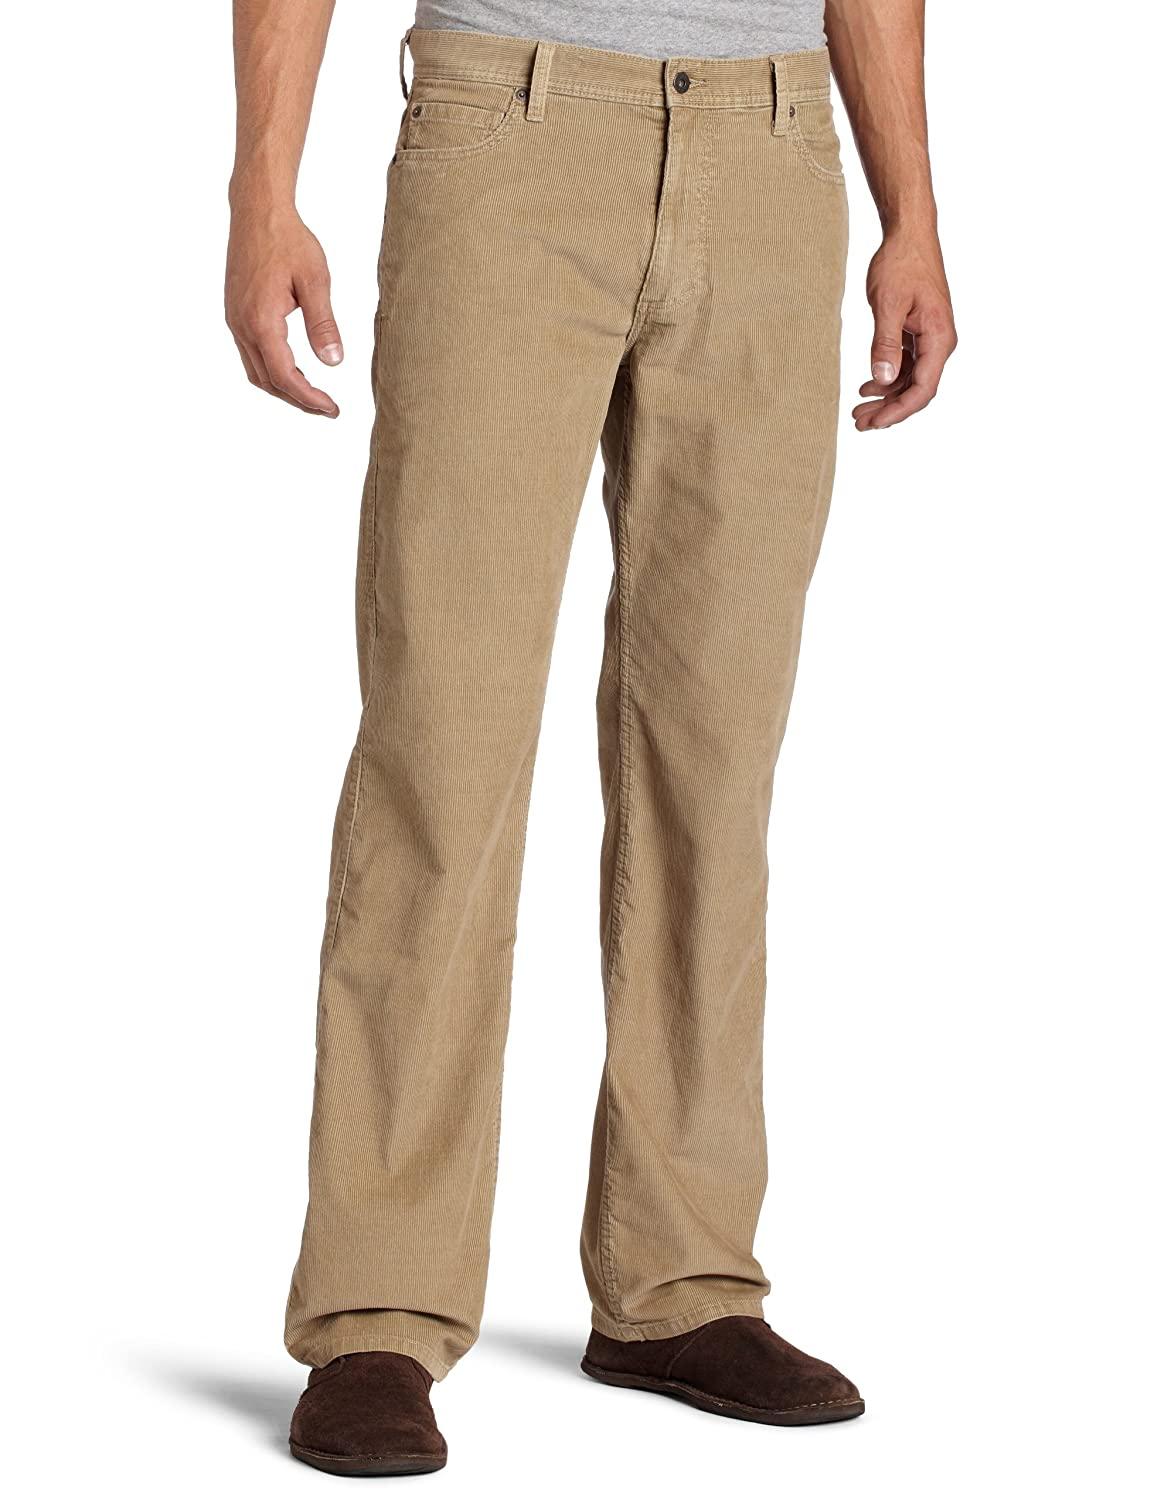 $11 for Dockers Mens 5 Pocket Khaki D3 Classic Fit Flat Front Cord Pant